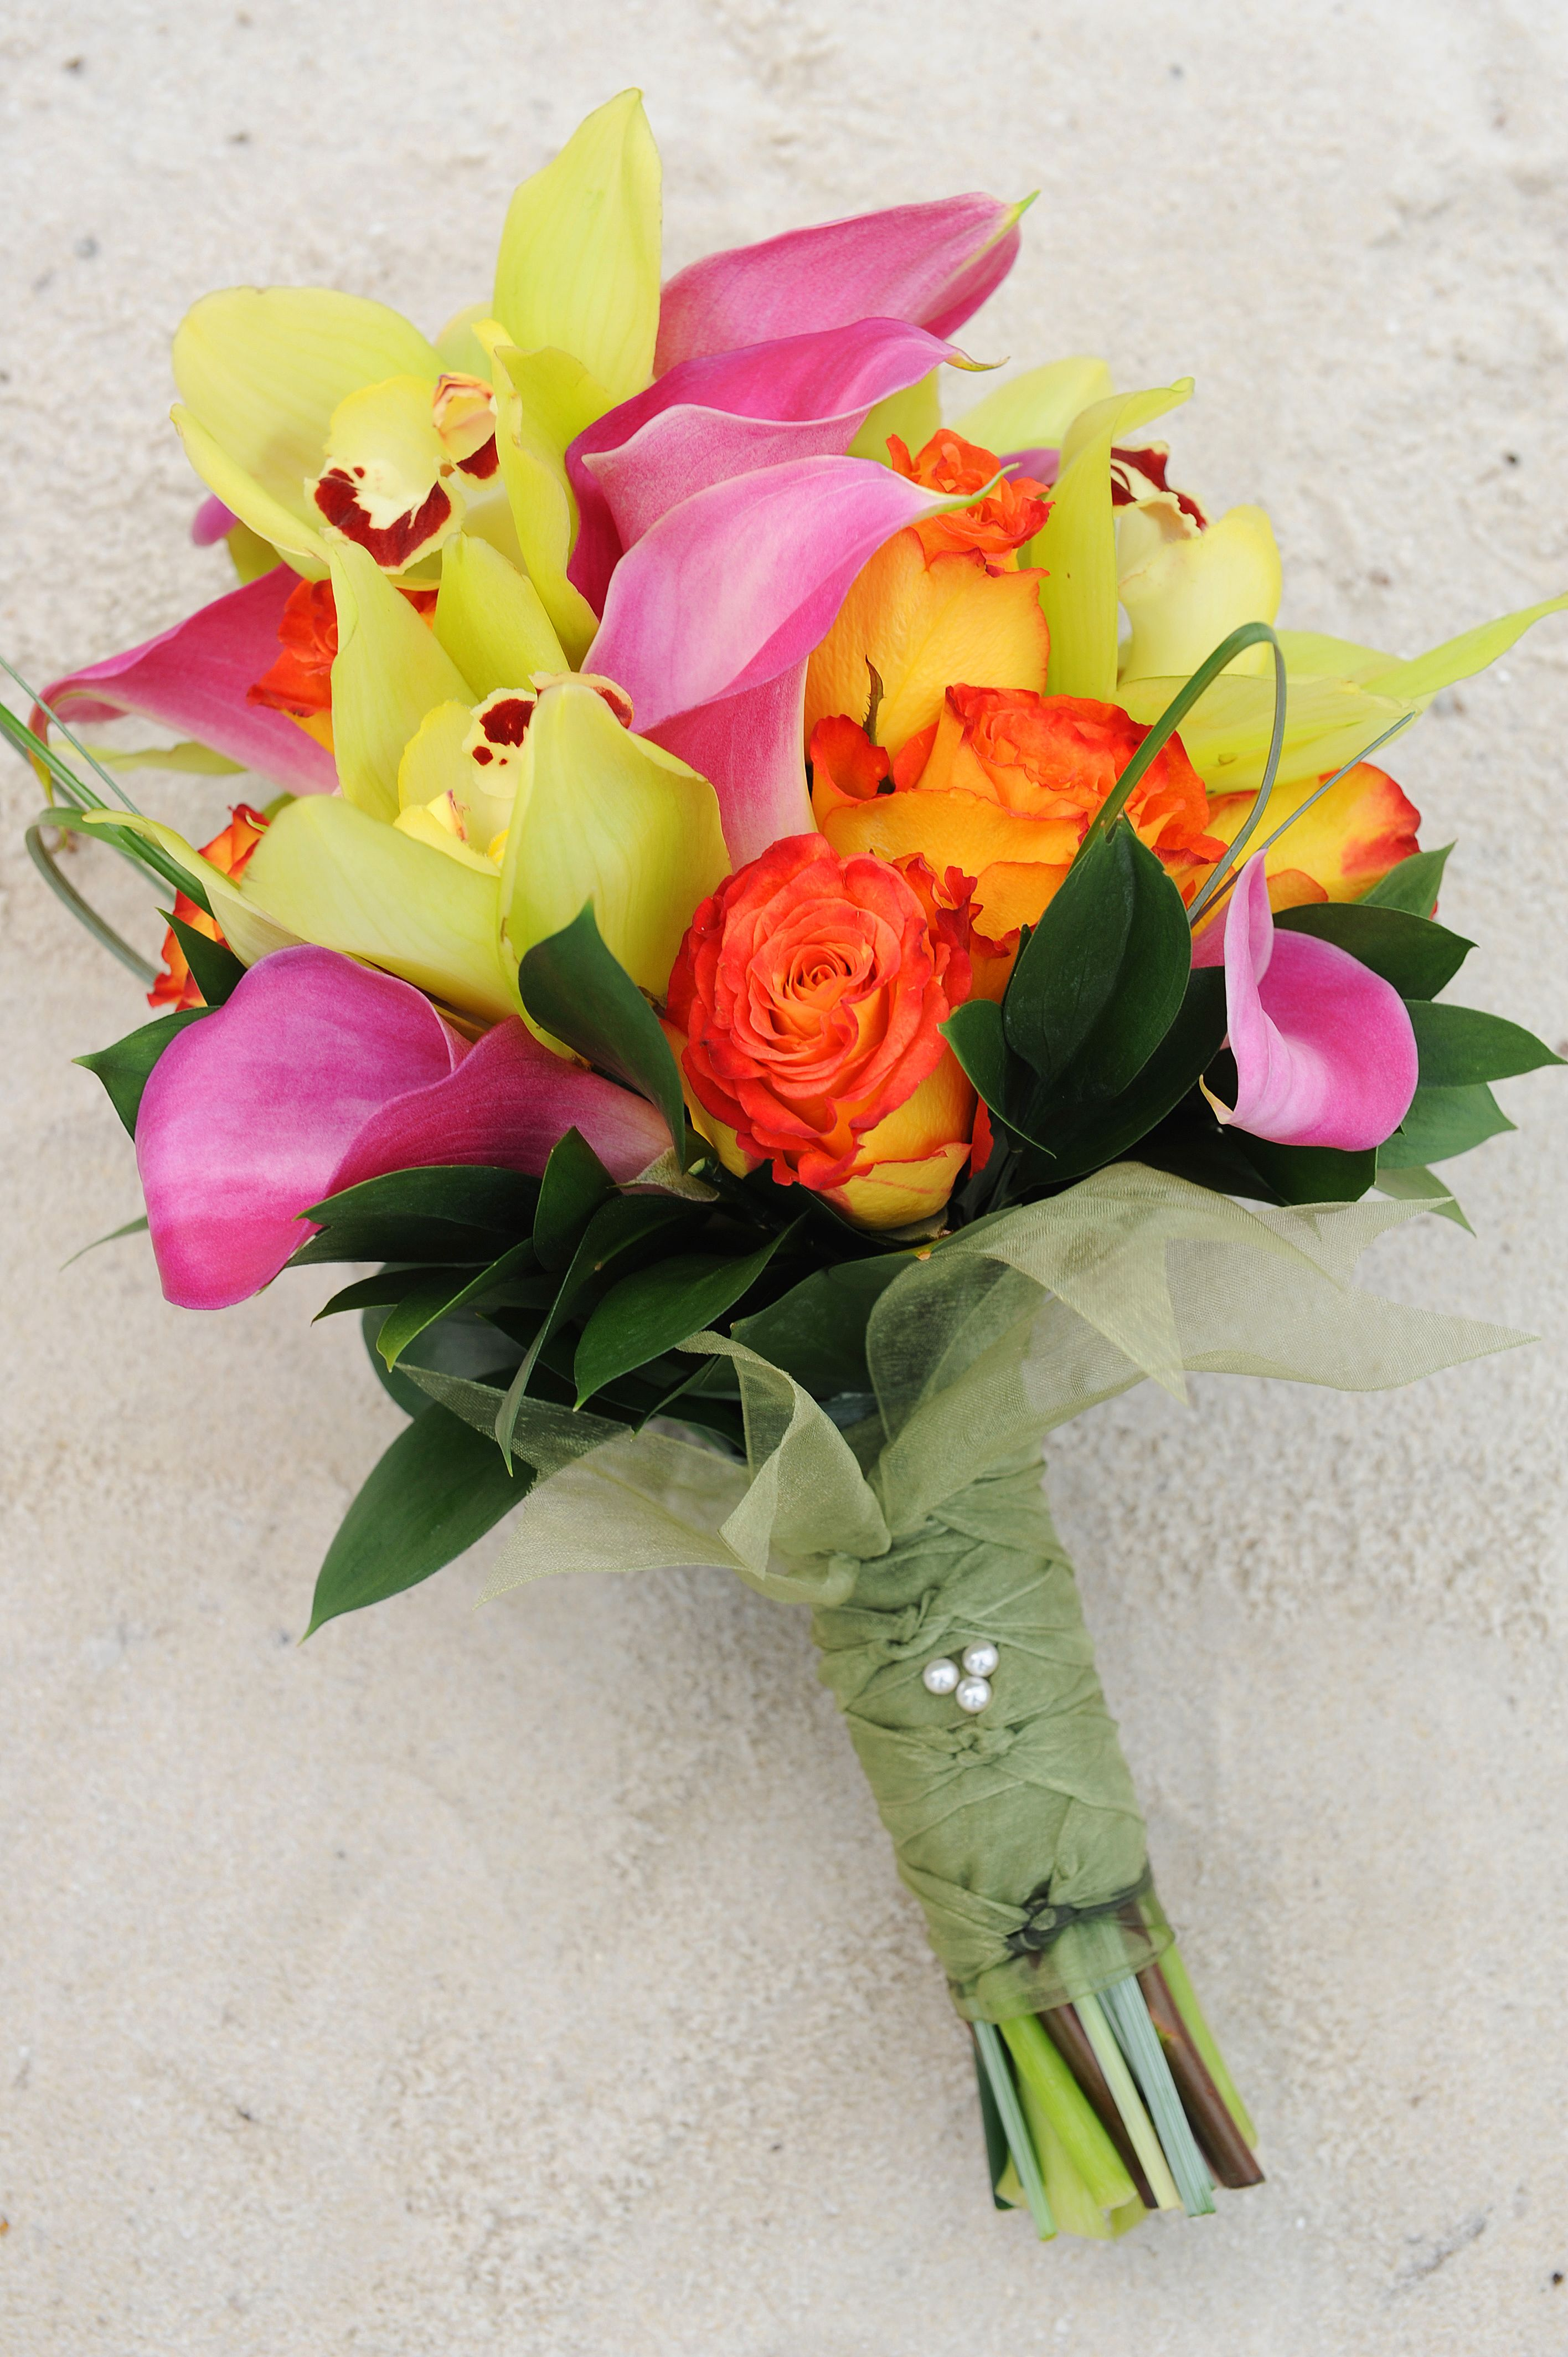 Tropical Bouquet With A Hidden Mickey On The Wrapped Stems